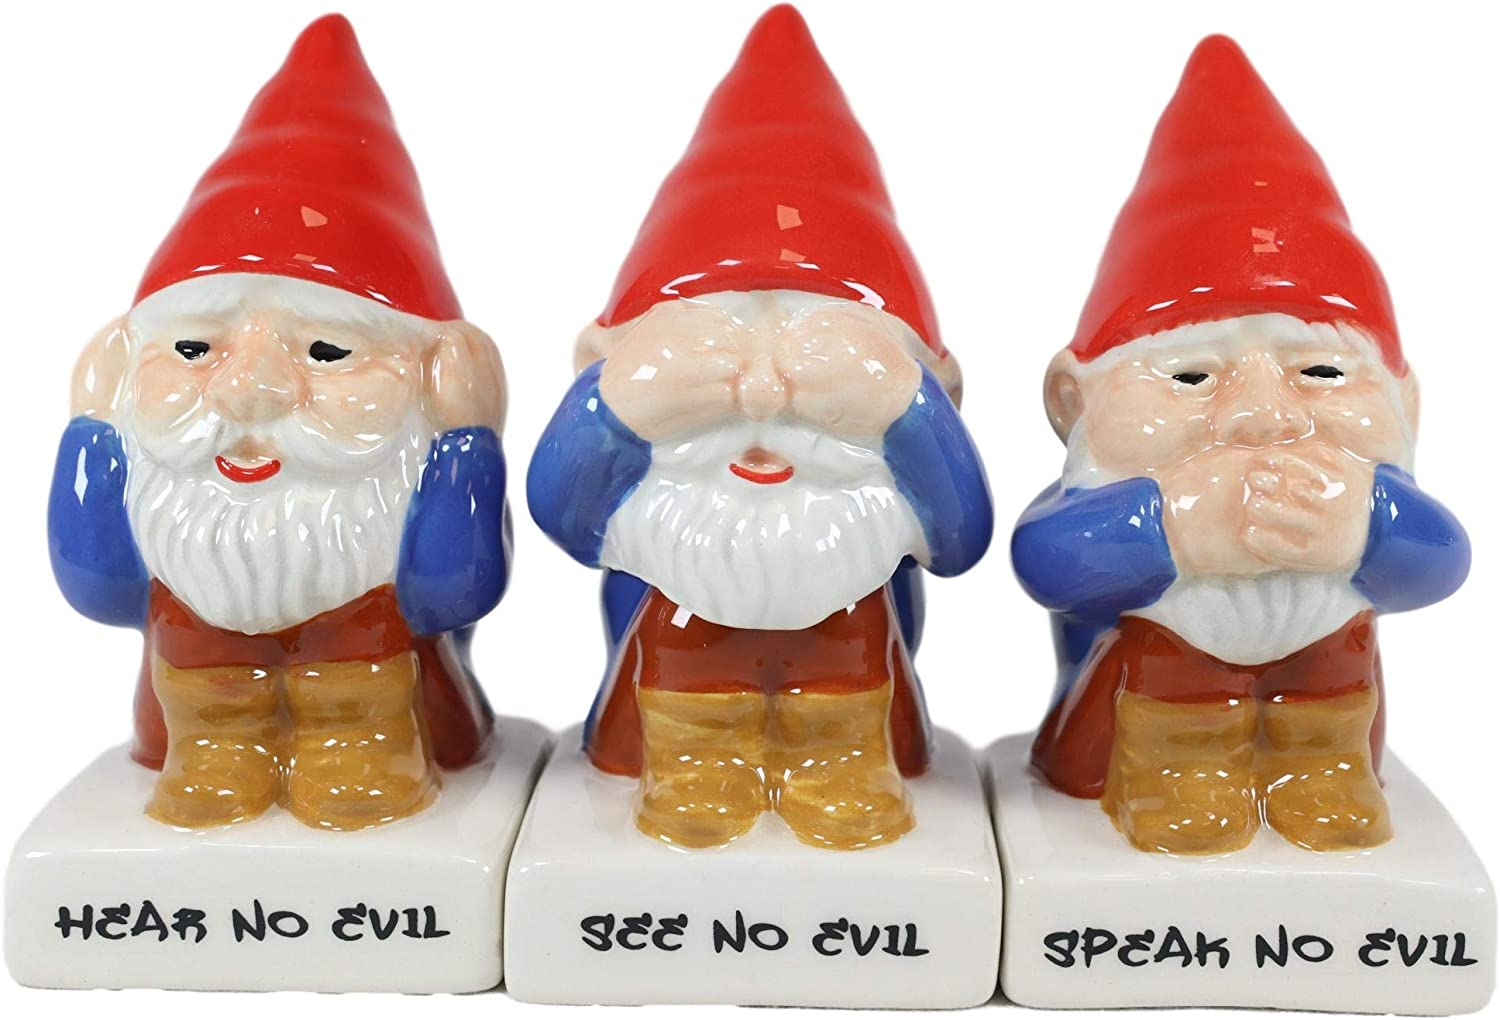 Ebros Gift Whimsical Magic Gnomes In See Hear Speak No Evil Ceramic Salt Pepper Shakers And Toothpick Holder Figurines Set Magical Gnome Family Dinnerware Serveware Accent